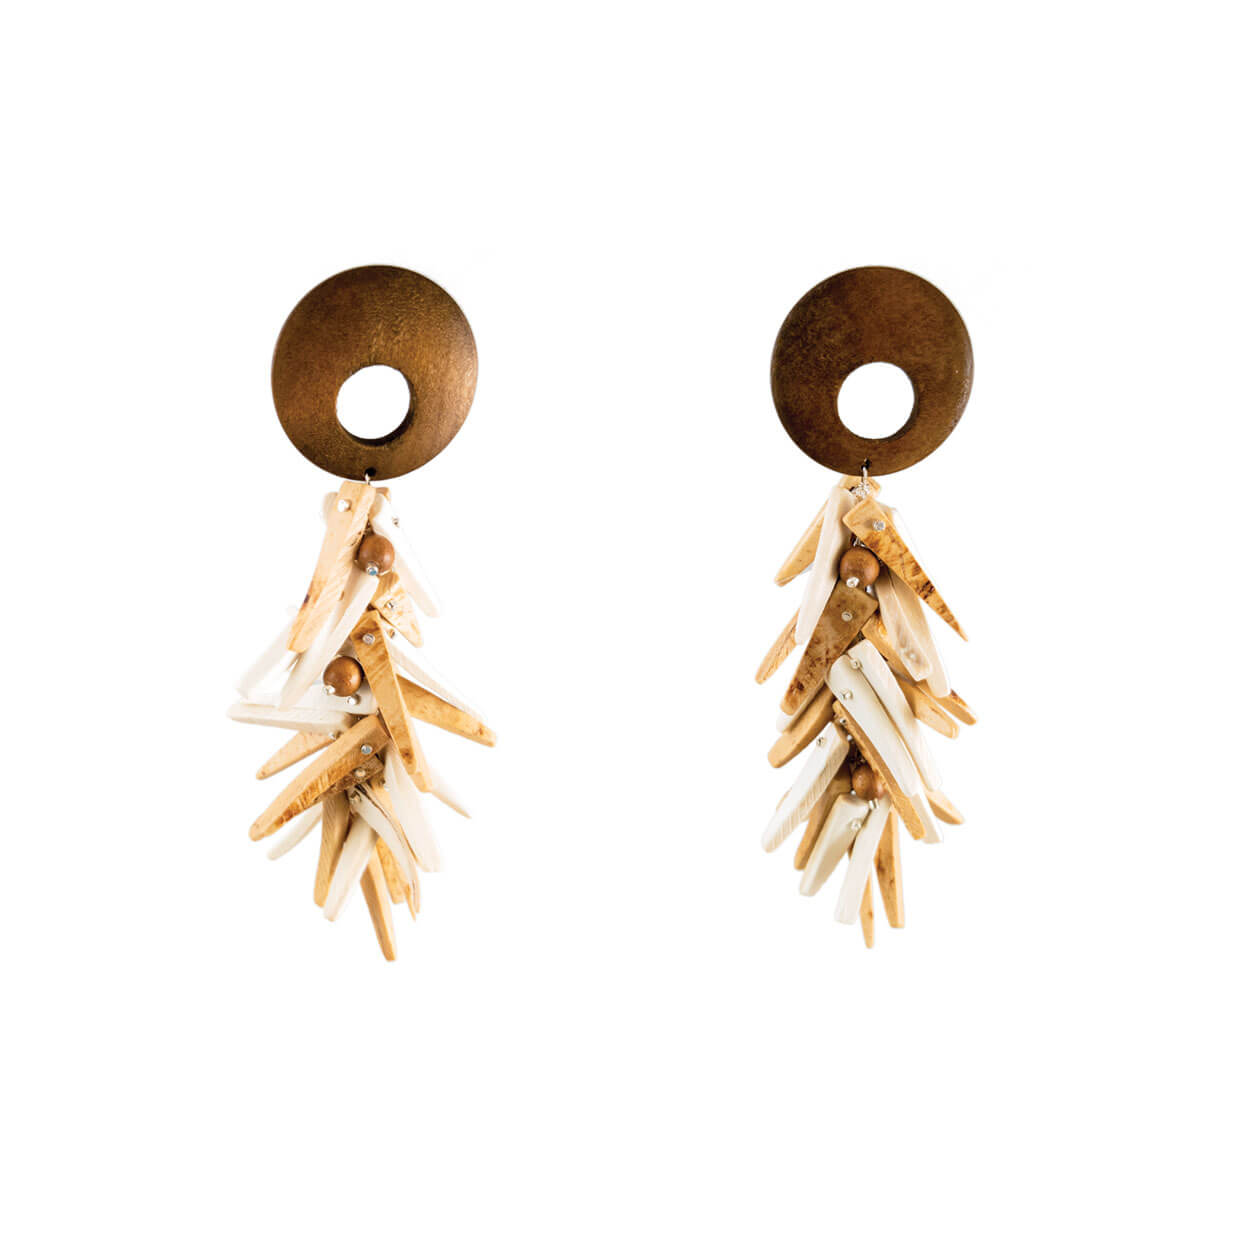 tropical beach style earrings with natural wood tops and coco stick charms that hang from silver chain